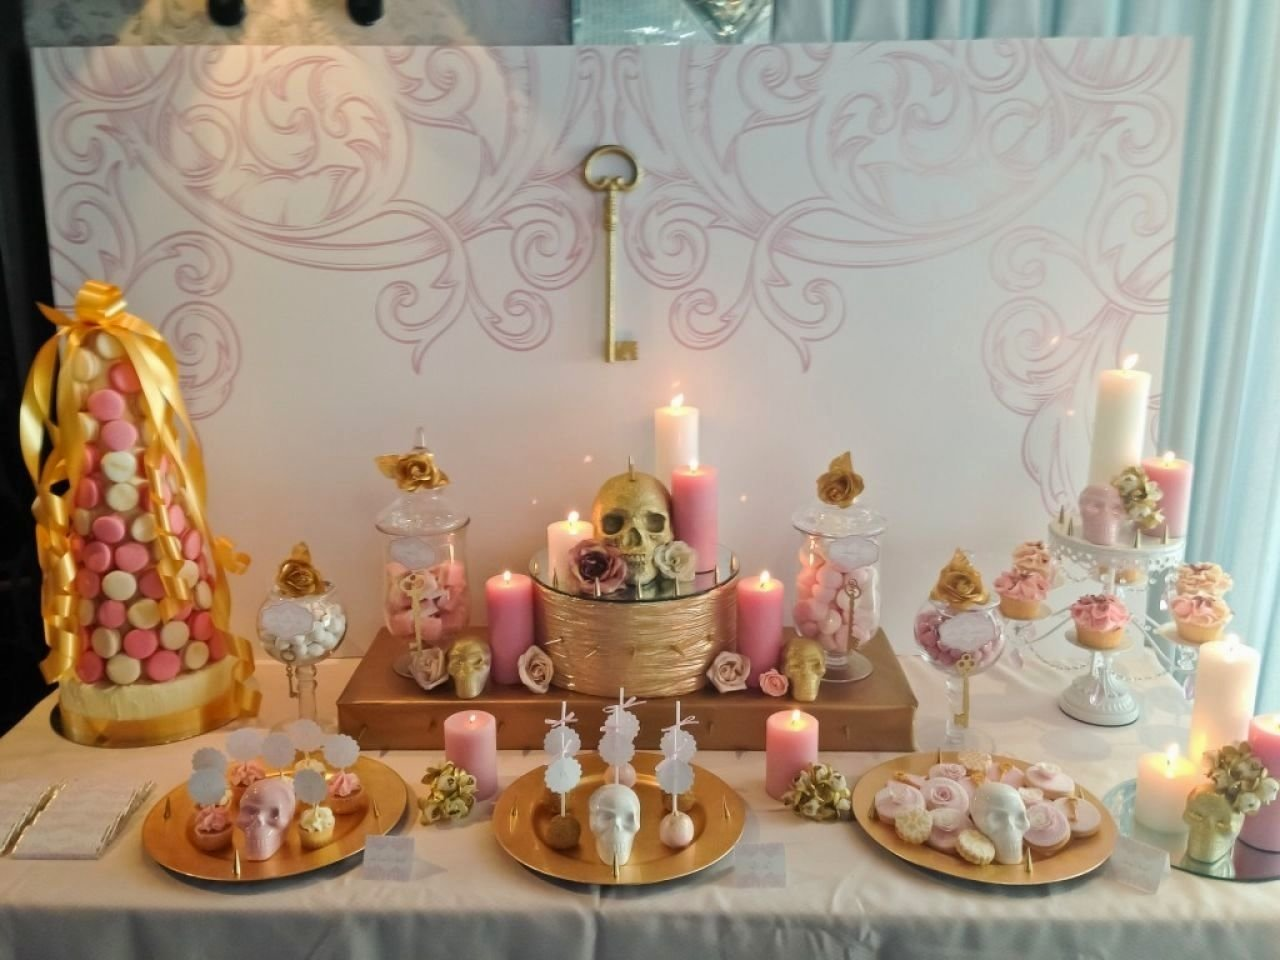 themes birthday : 21st birthday party ideas for her as well as 21st